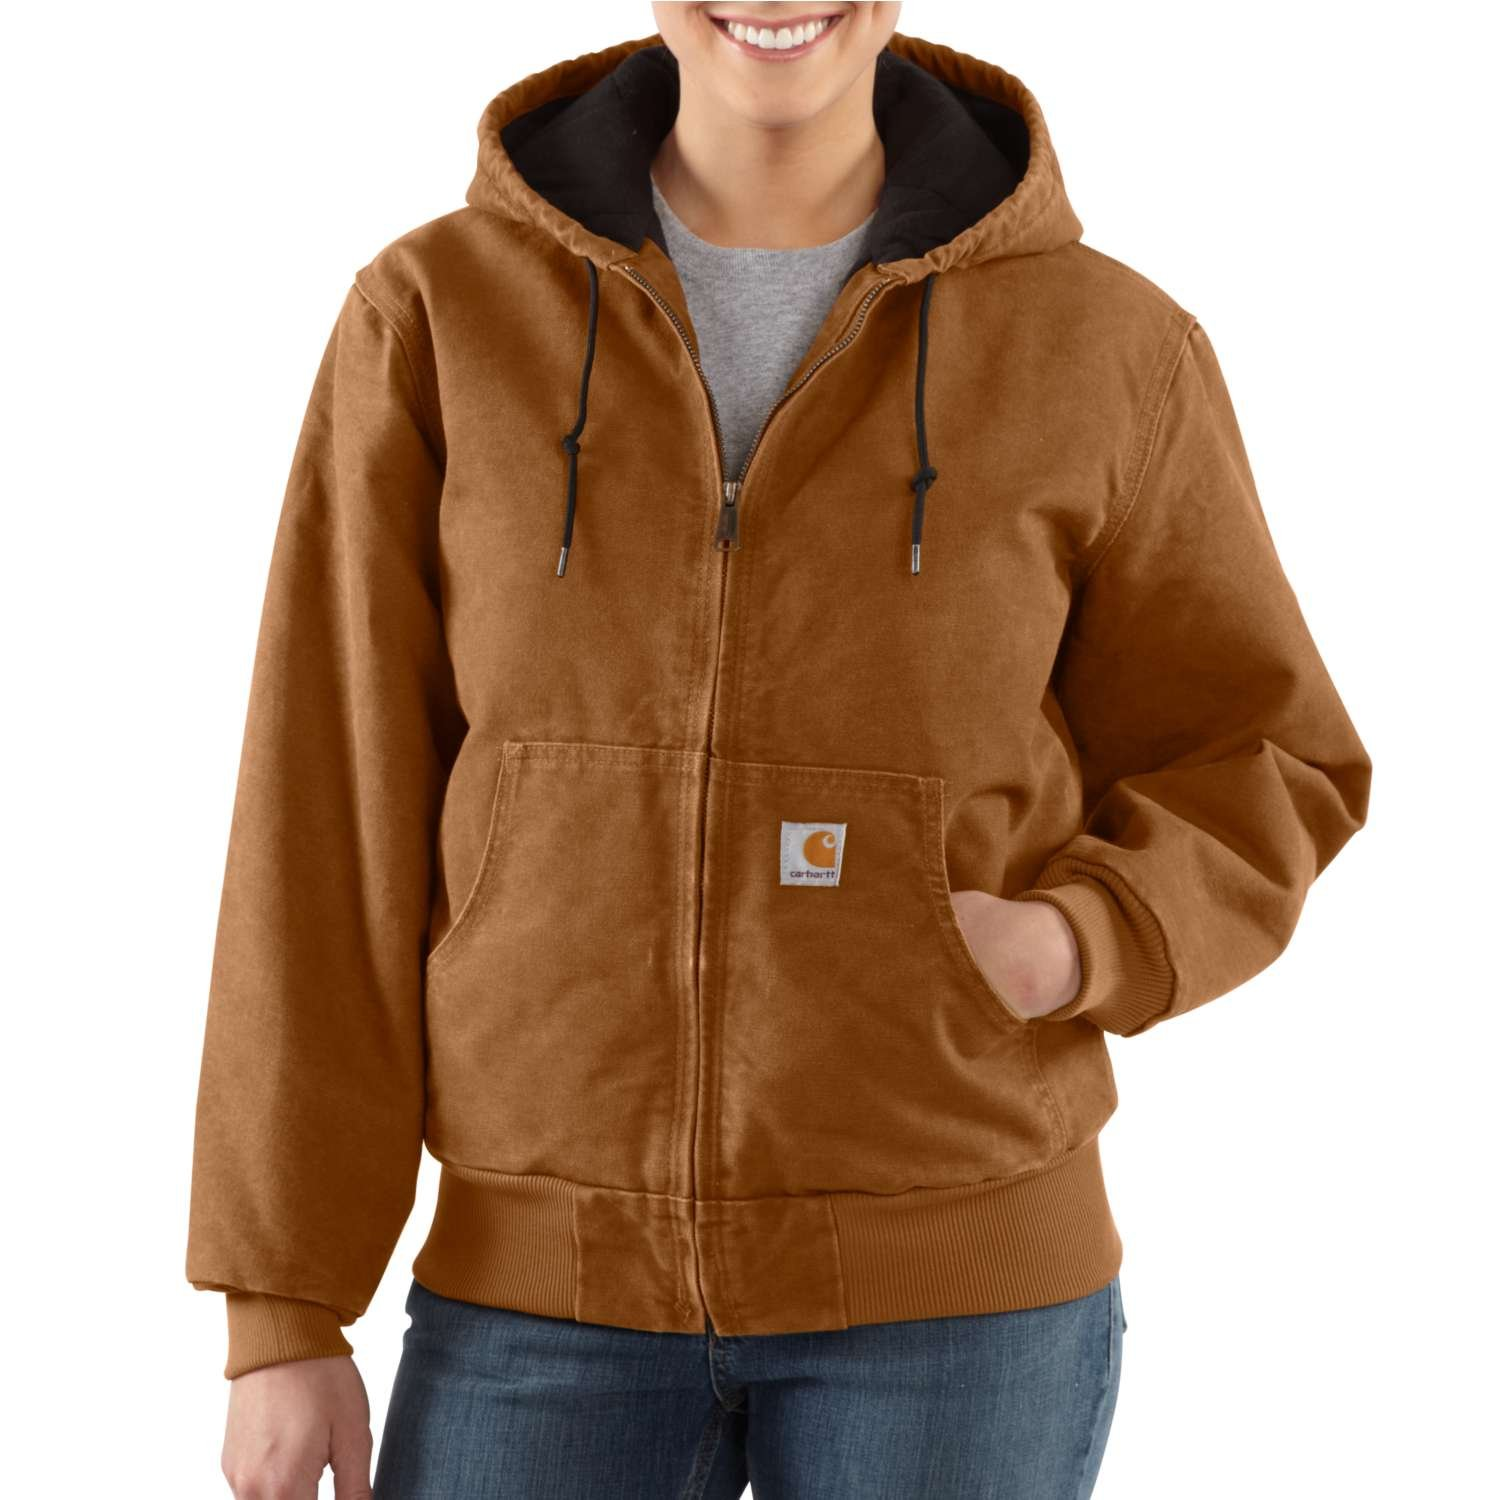 Carhartt Women's Quilted Flannel Lined Sandstone Active Jacket WJ130,Carhartt Brown,Medium